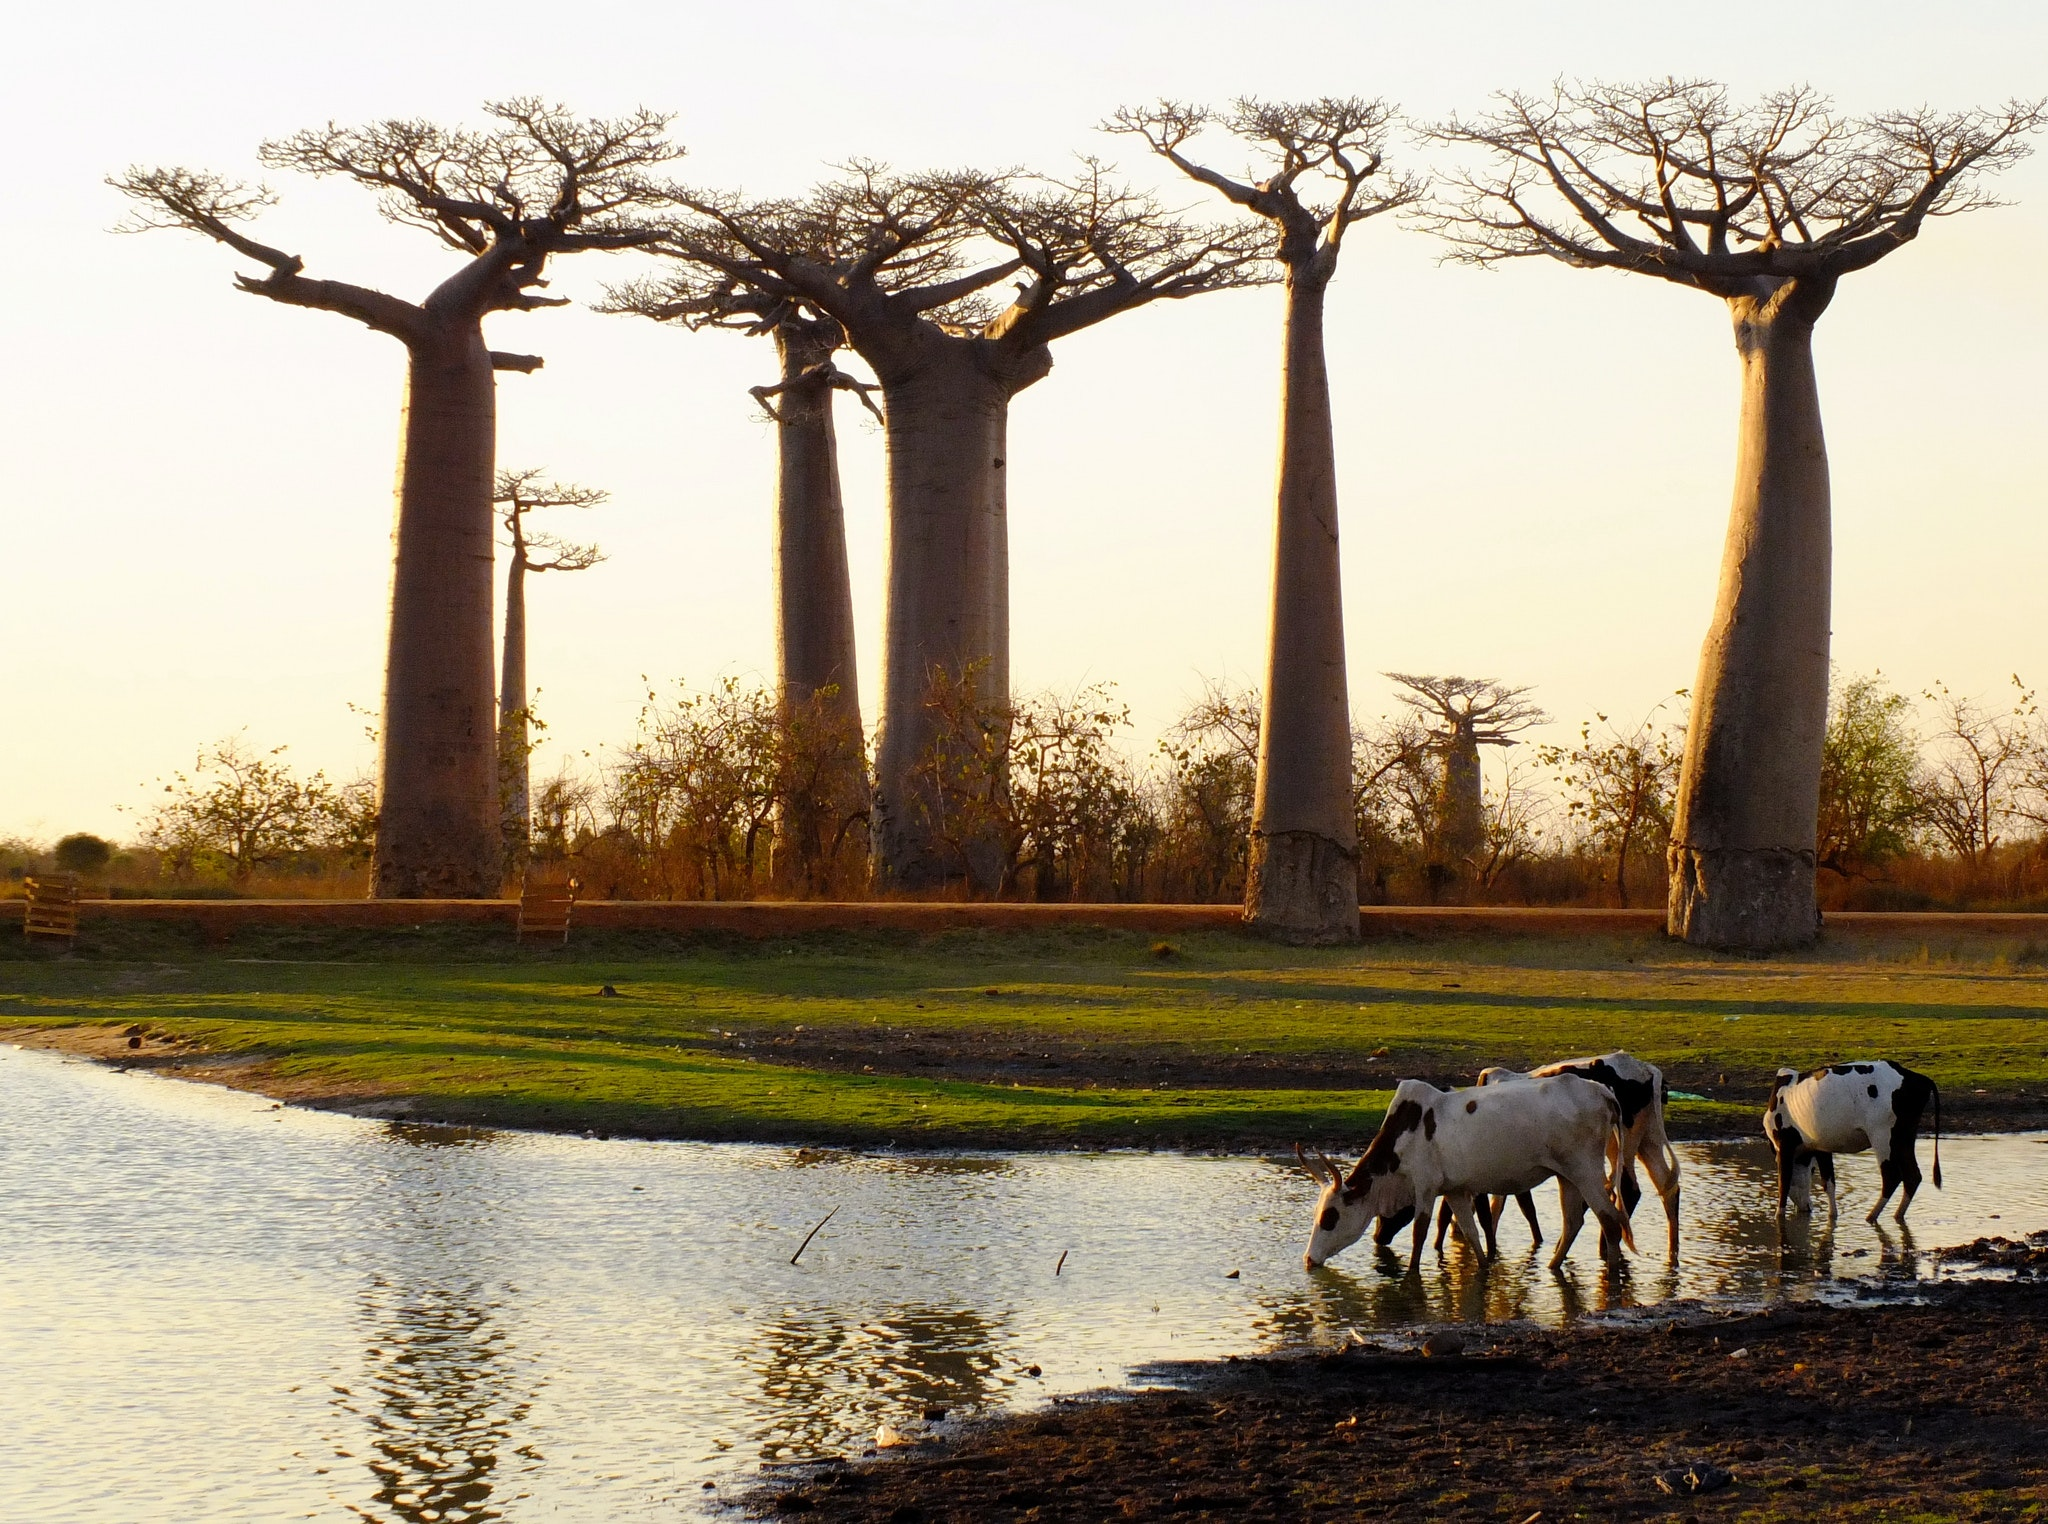 The Avenue of the Baobabs in Madagascar